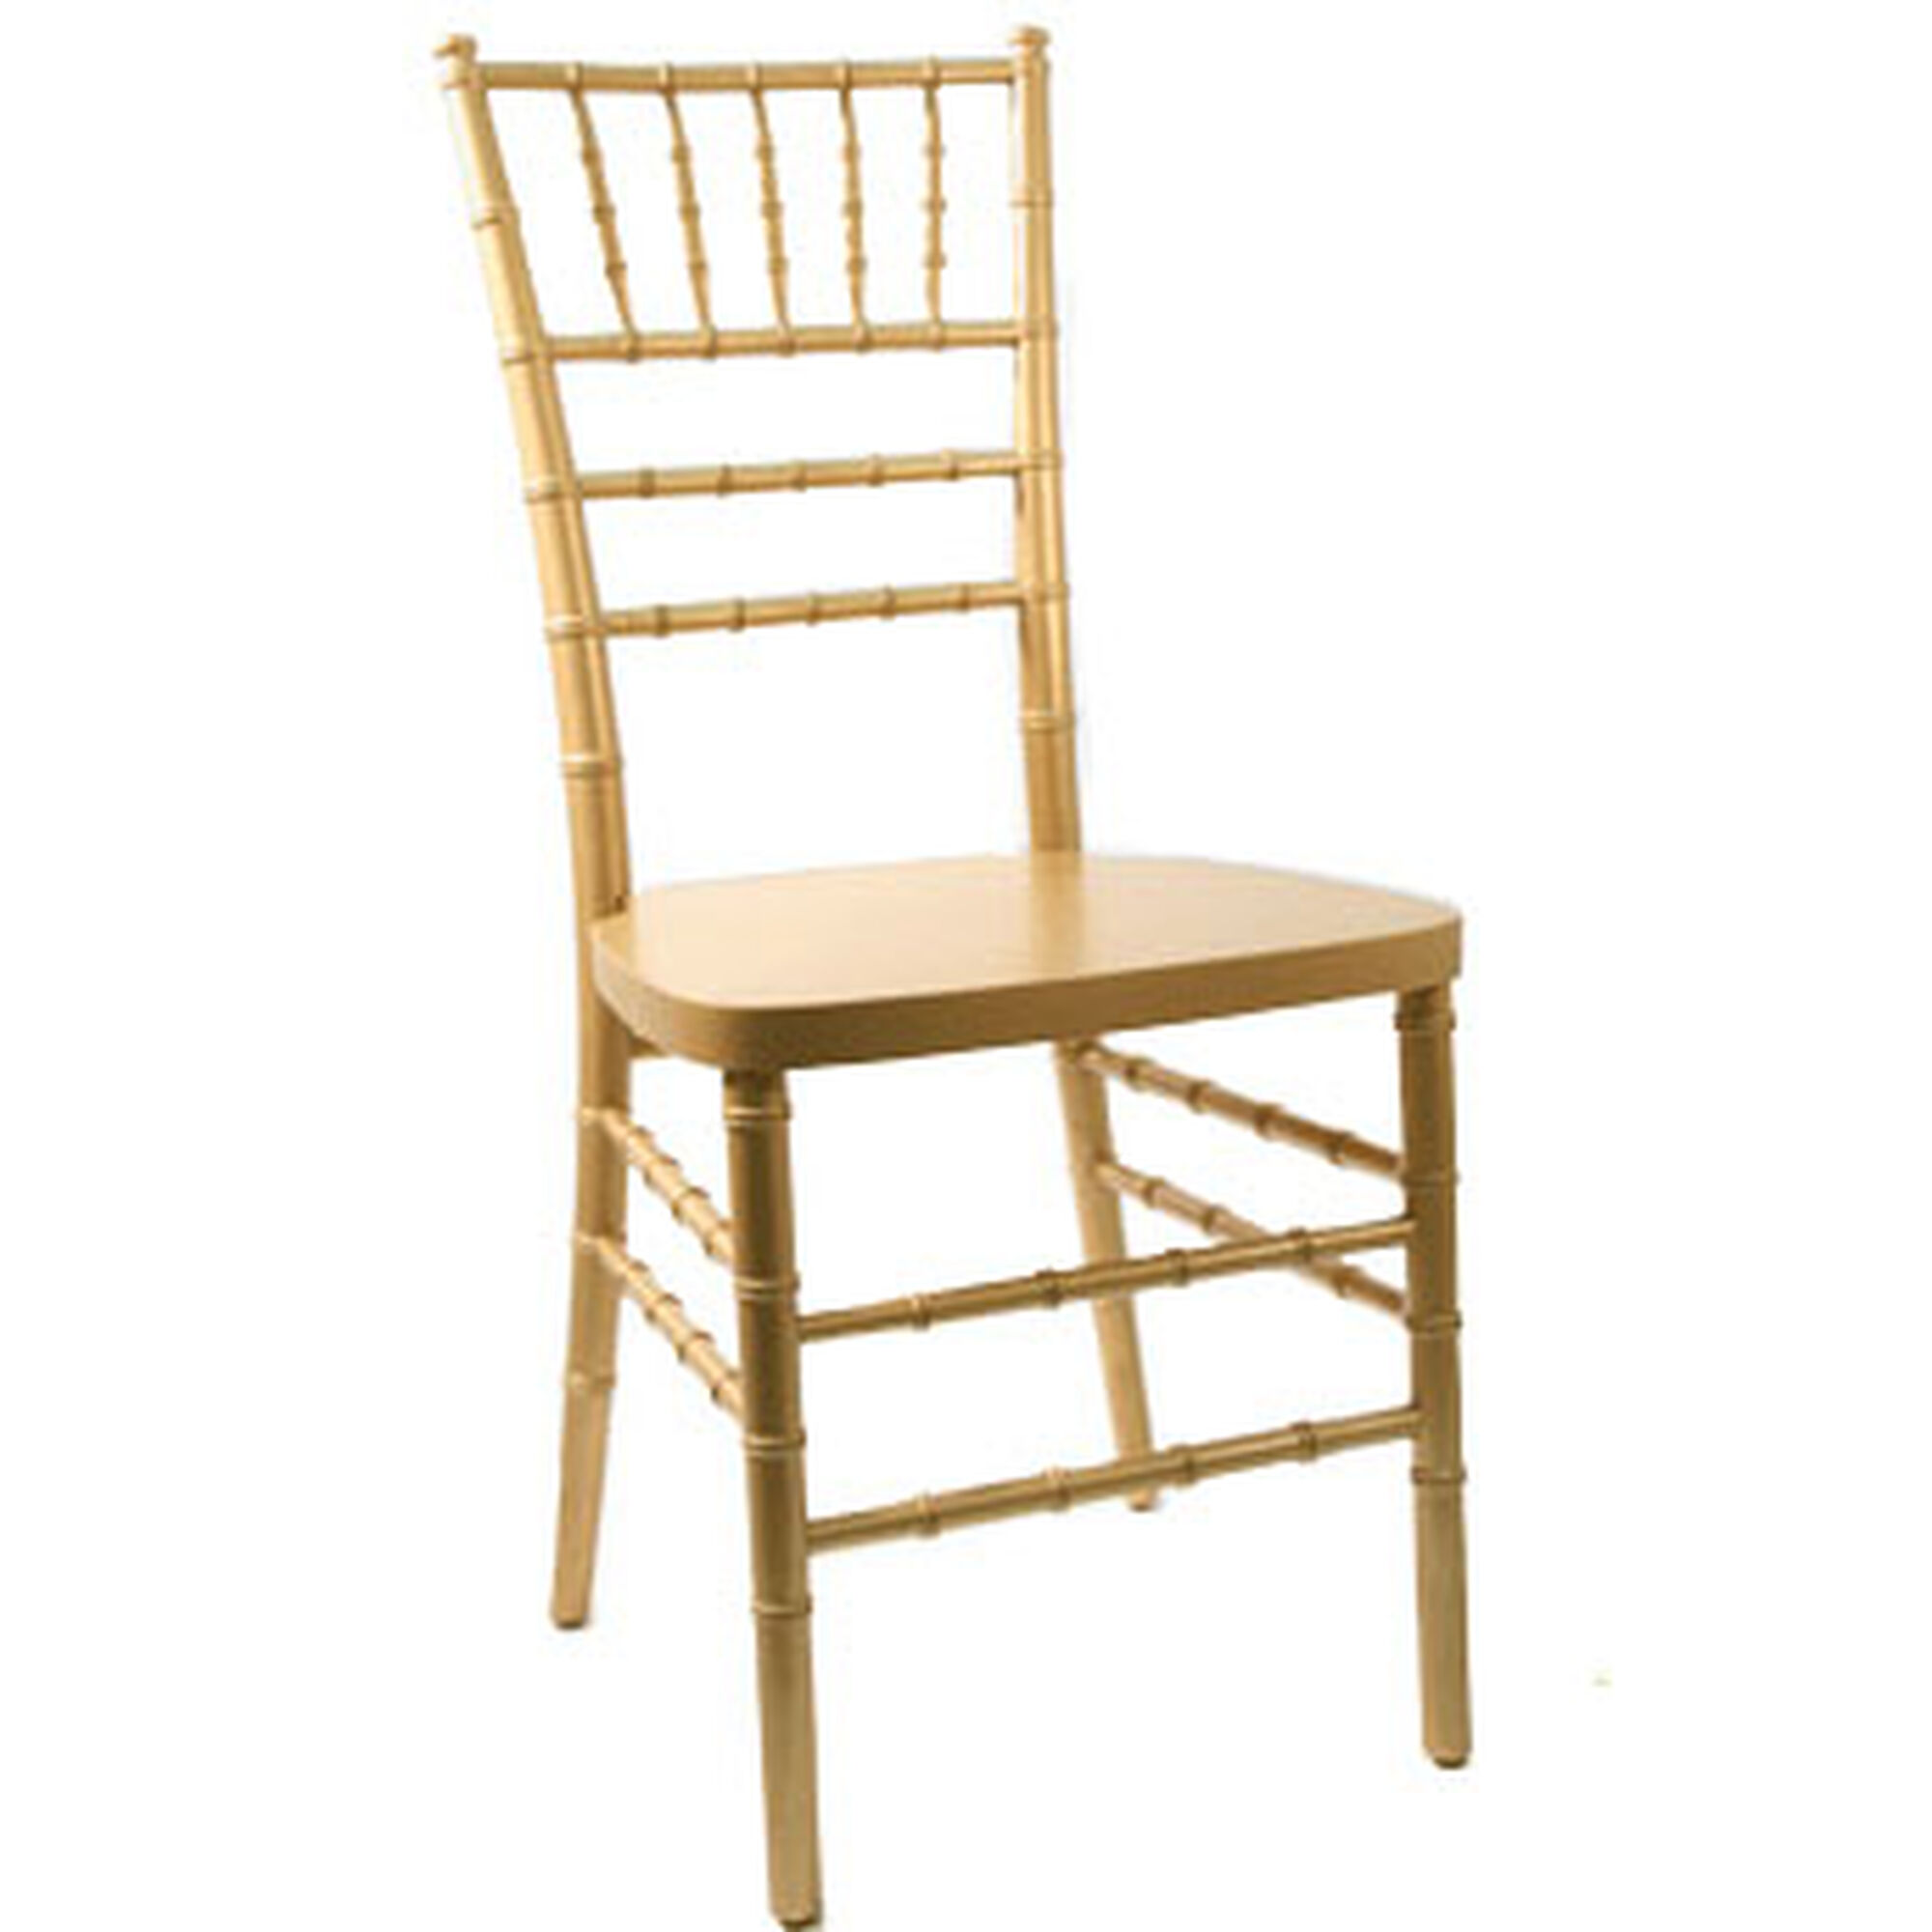 Commercial Seating Products American Classic Gold Wood